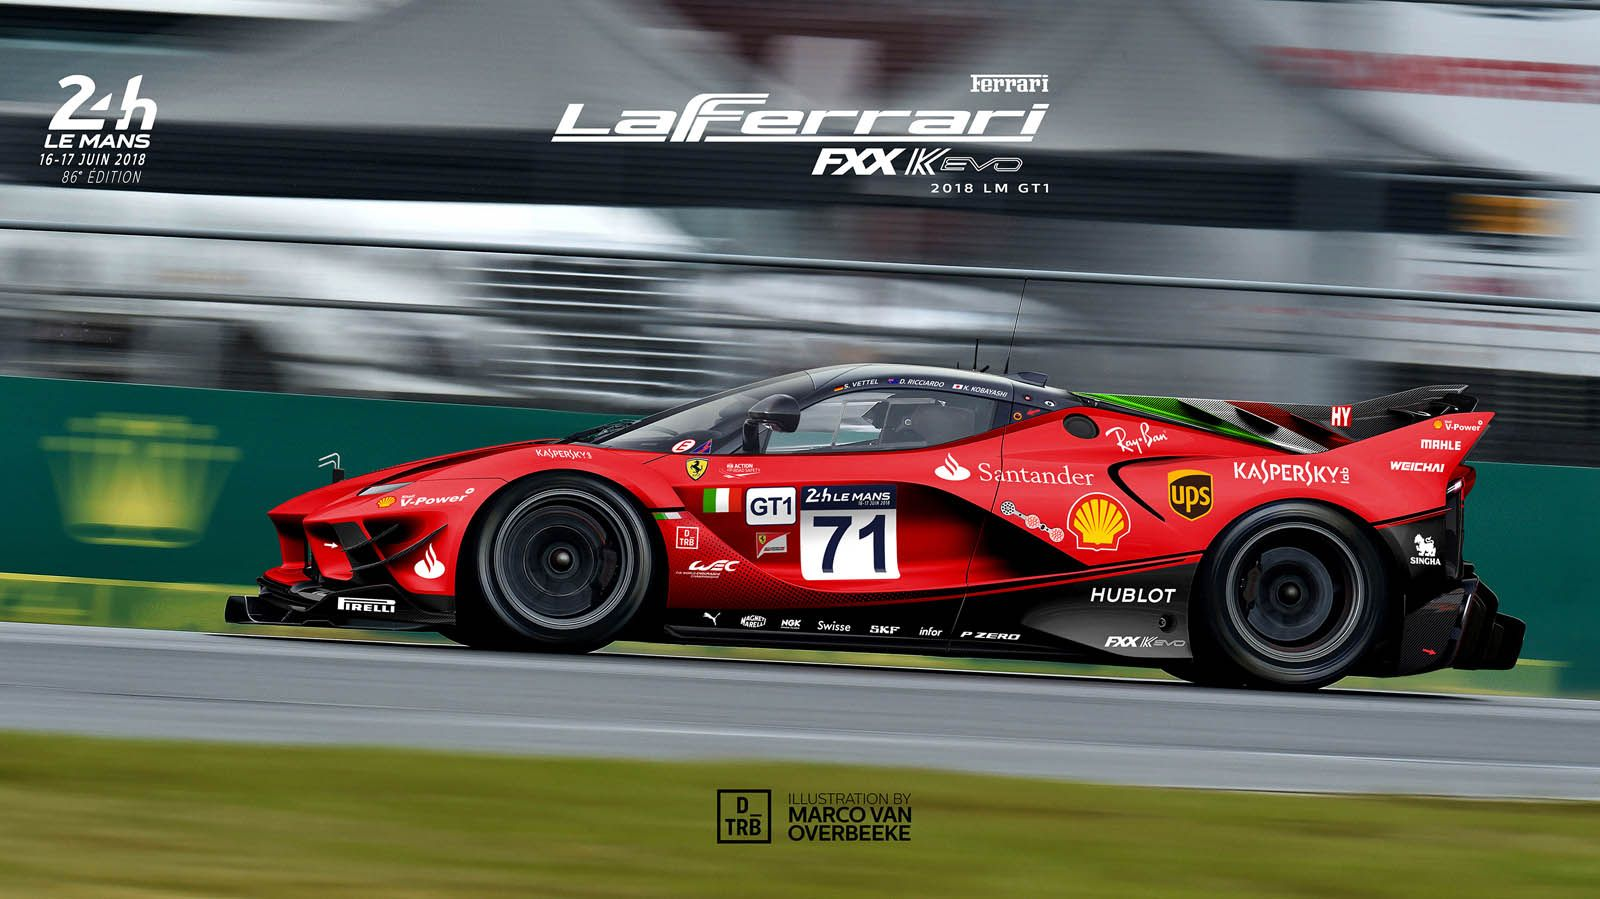 da5e948c-le-mans-hypercar-regulations-6